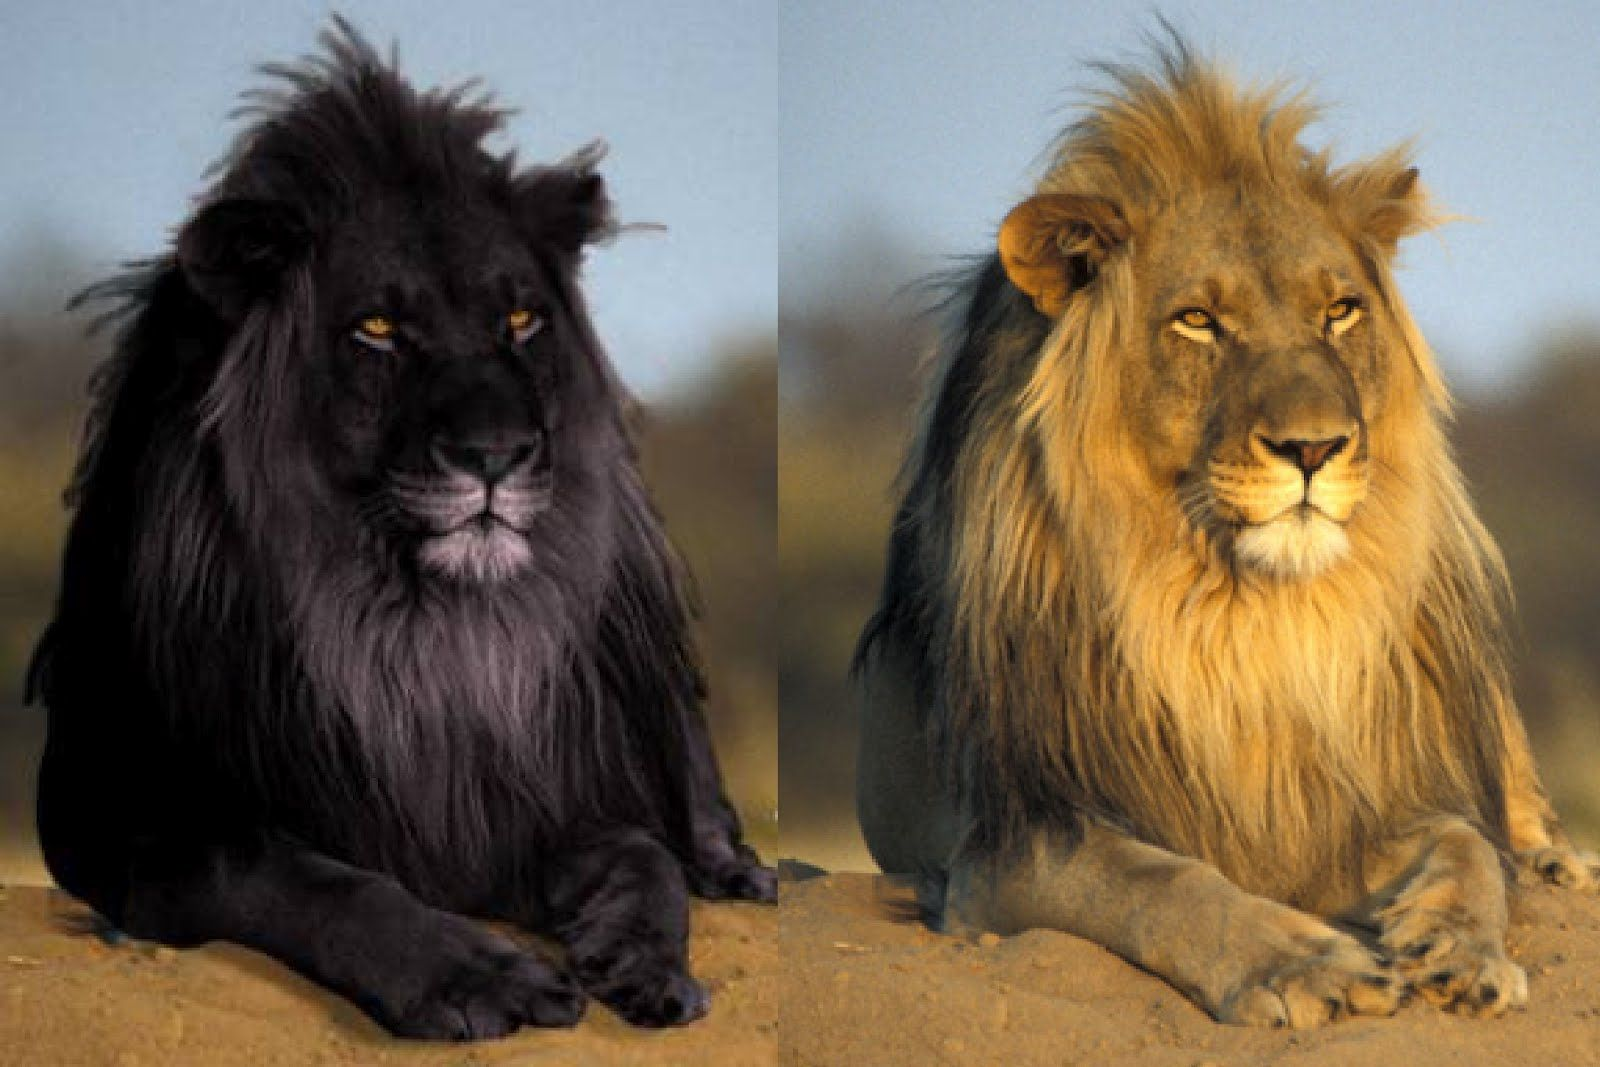 Un Natural There Are No Black Lions In Nature This Is A Widely Circulated Photoshop Fake See Other Photoshopped Black Lion Melanistic Animals Melanistic